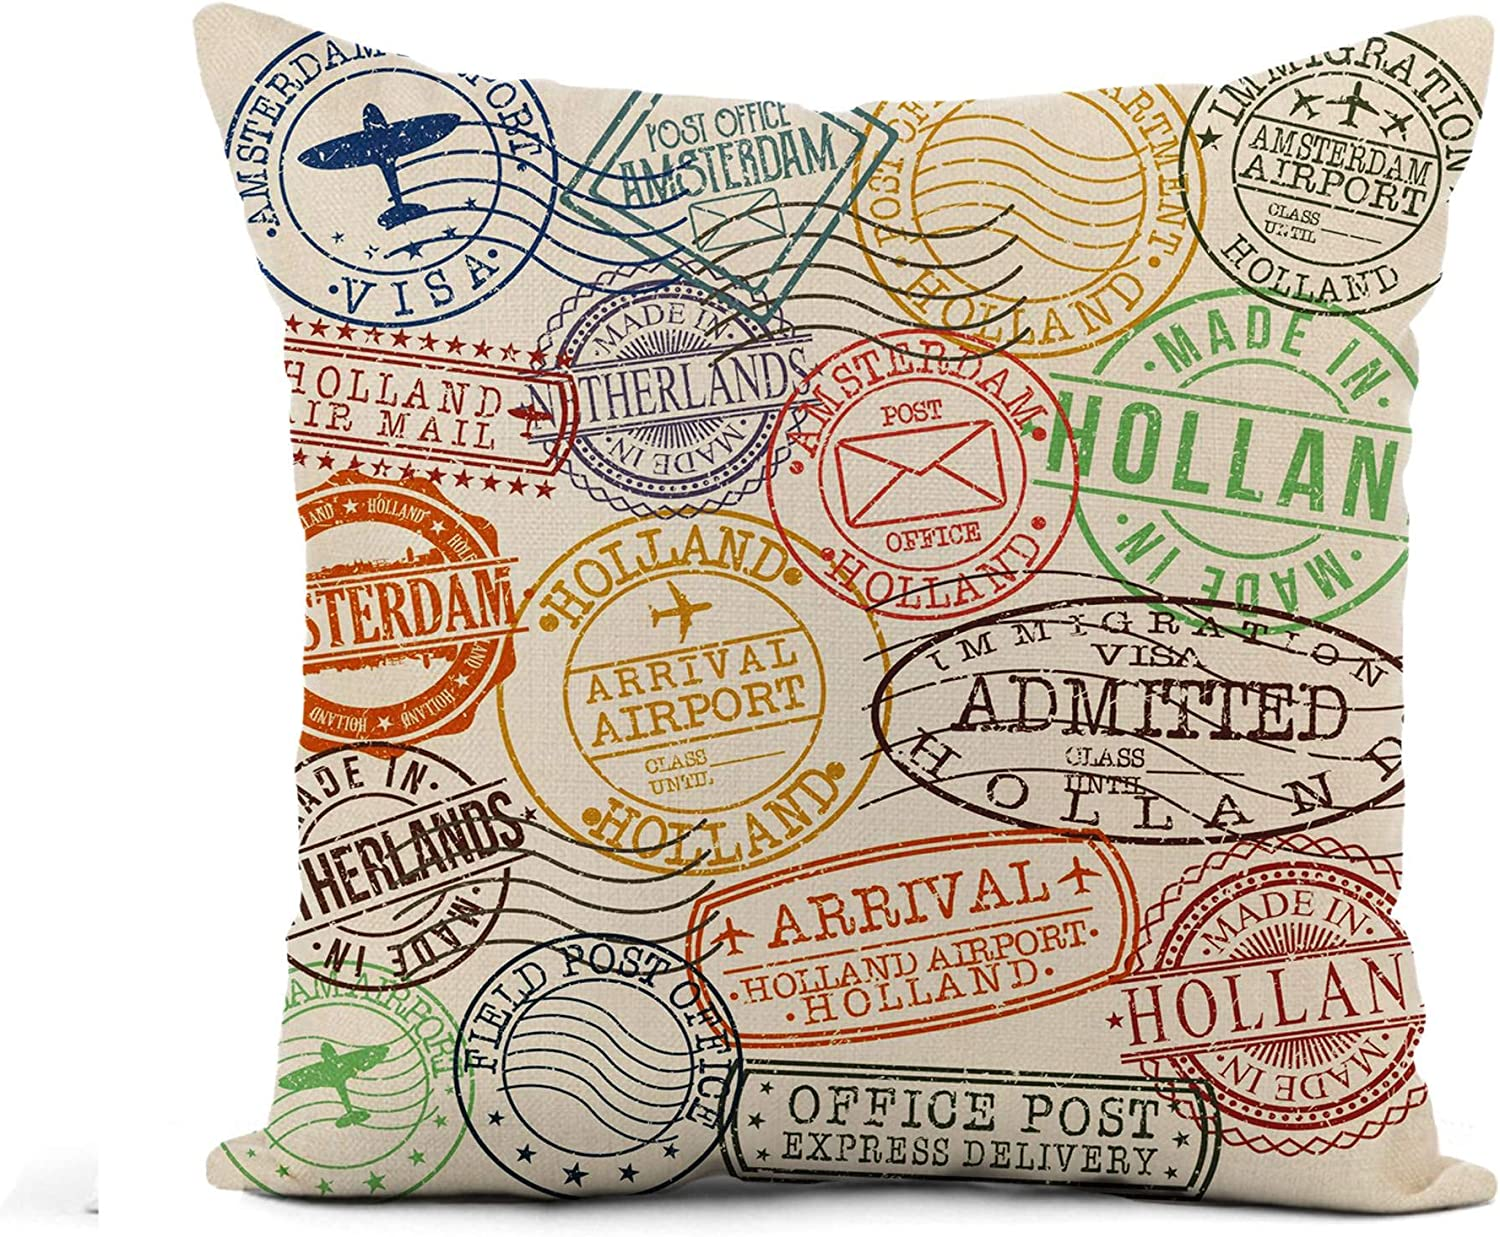 Awowee Flax Throw Pillow Cover Post Amsterdam Holland Netherlands Stamp Symbol Aged Airport Antique 18x18 Inches Pillowcase Home Decor Square Cotton Linen Pillow Case Cushion Cover